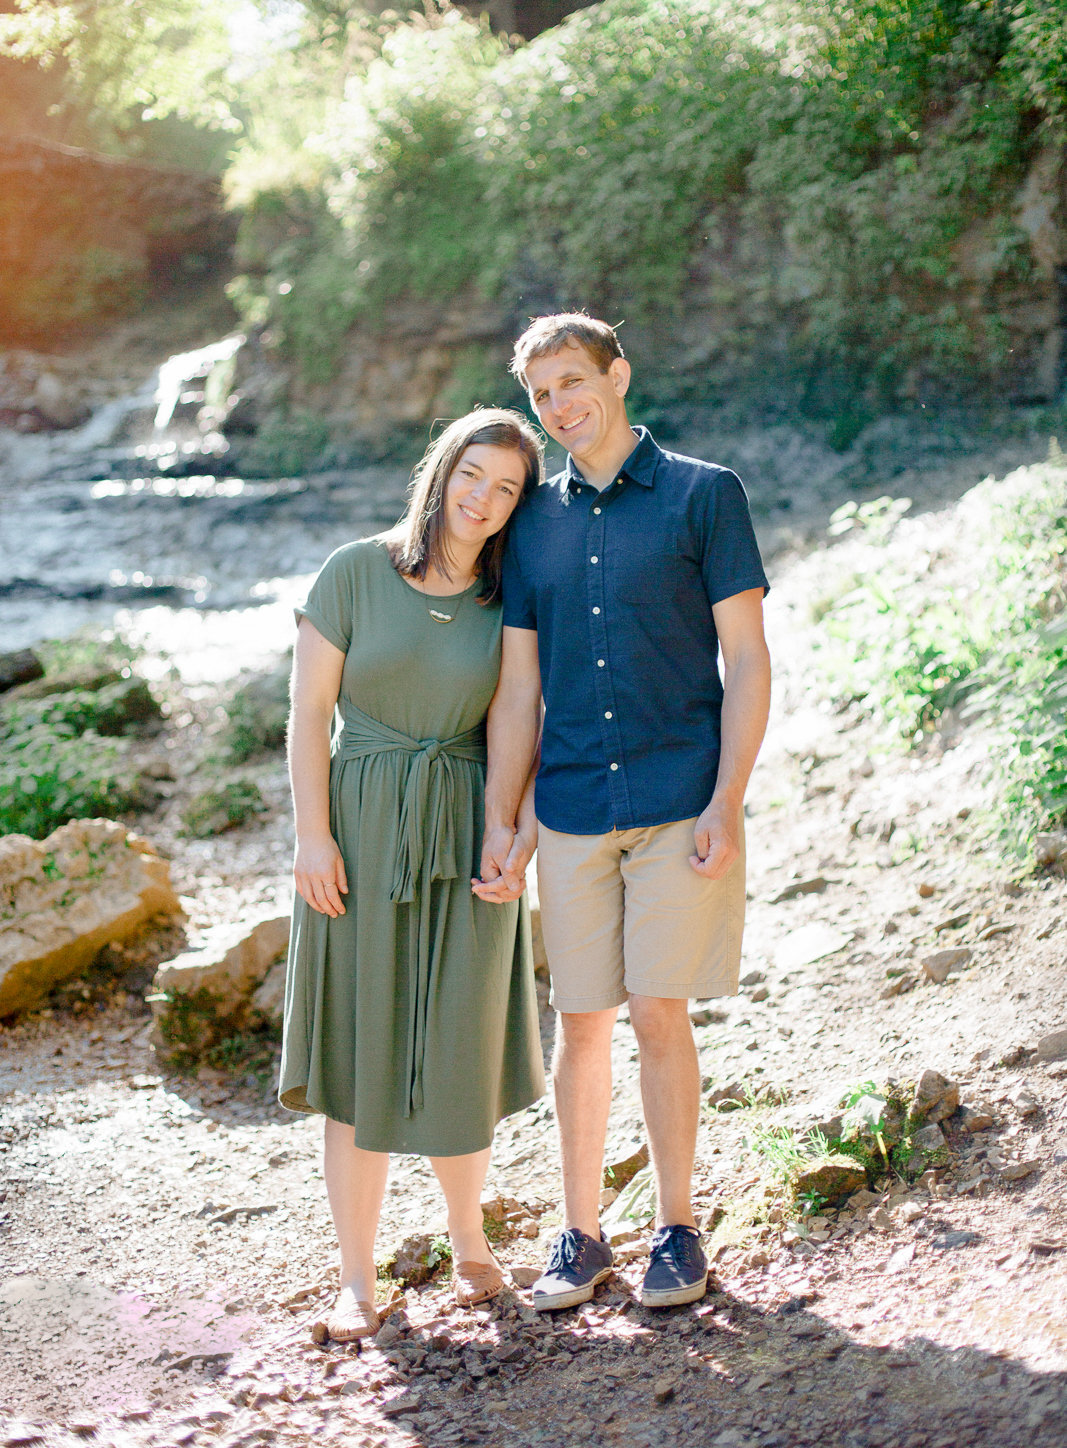 willow river state park waterfall background as couple stands hand in hand